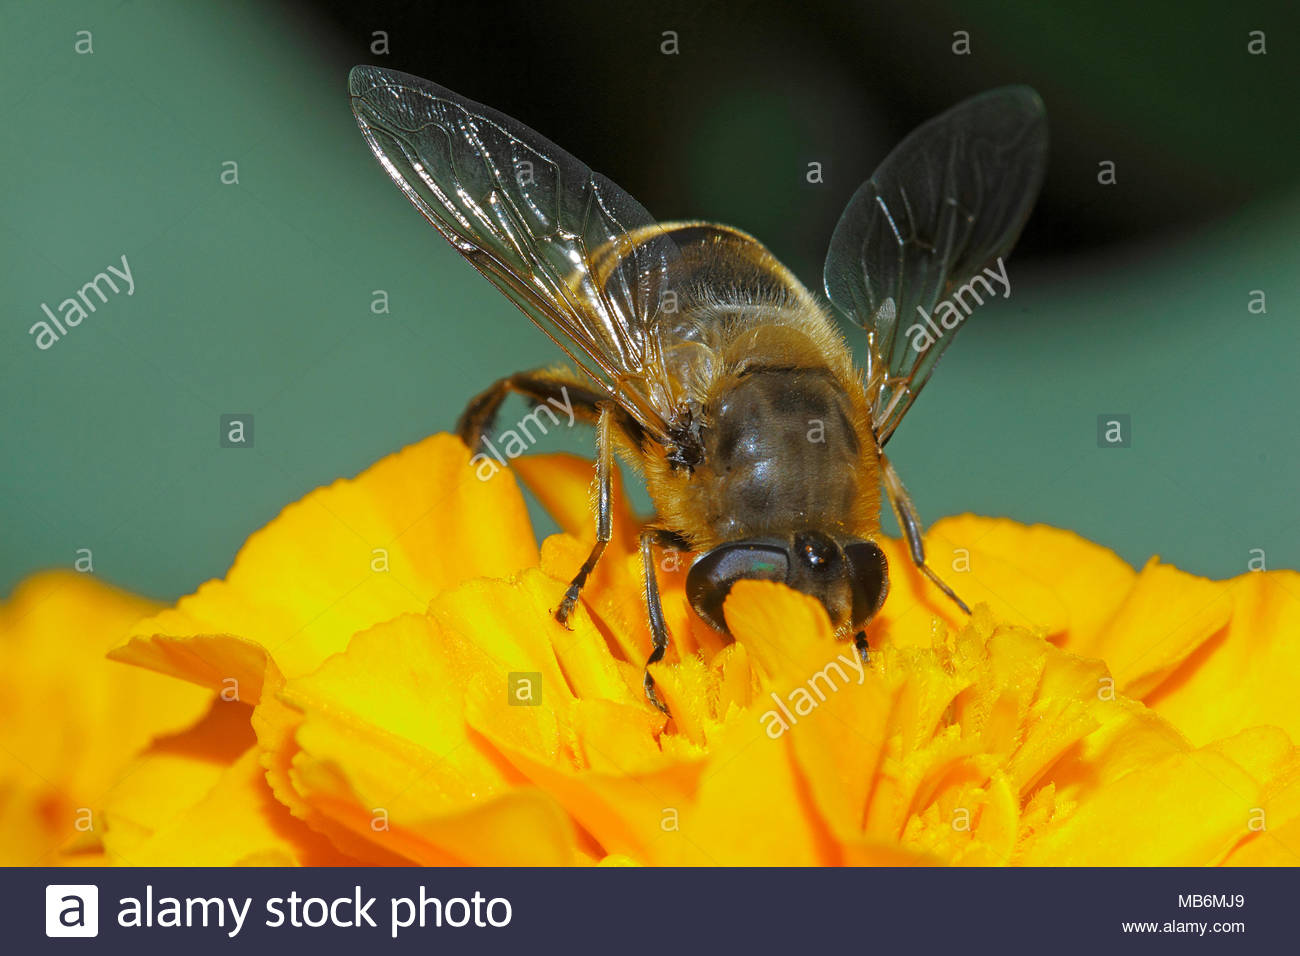 European Honey Bee, Western Honey Bee (Apis mellifera, Apis mellifica), collecting nectar of a blossom, Germany, Europe - Stock Image